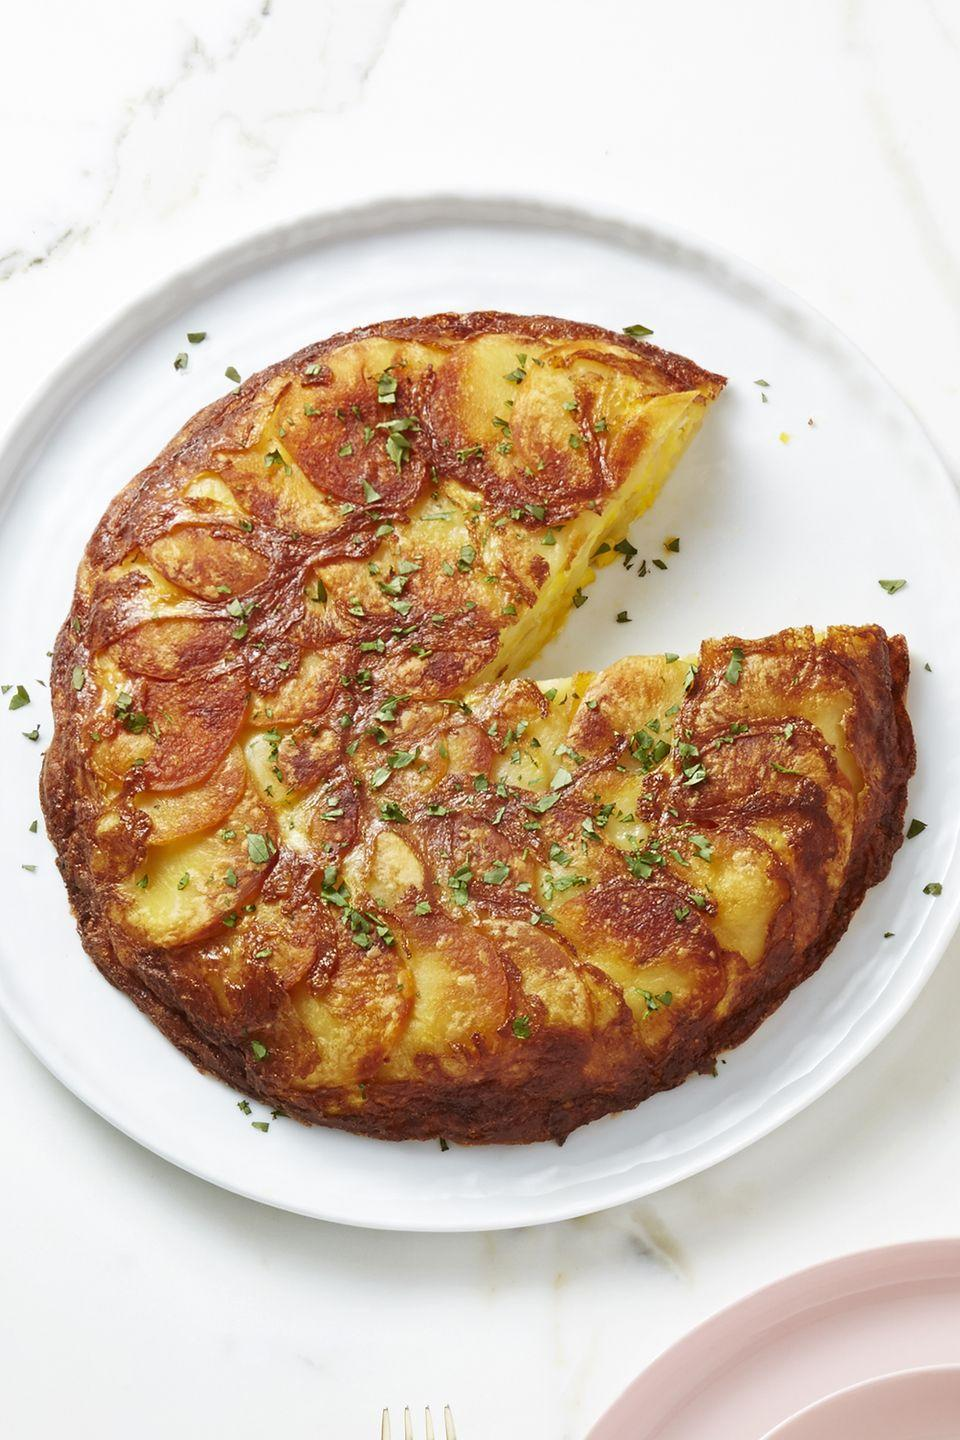 "<p>Forget hash browns, this potato round omelet ""crust"" is <em>way </em>more satisfying.</p><p><a href=""https://www.goodhousekeeping.com/food-recipes/a43177/spanish-potato-omelet-recipe/"" rel=""nofollow noopener"" target=""_blank"" data-ylk=""slk:Get the recipe for Spanish Potato Omelet »"" class=""link rapid-noclick-resp""><em>Get the recipe for Spanish Potato Omelet »</em></a><br></p>"